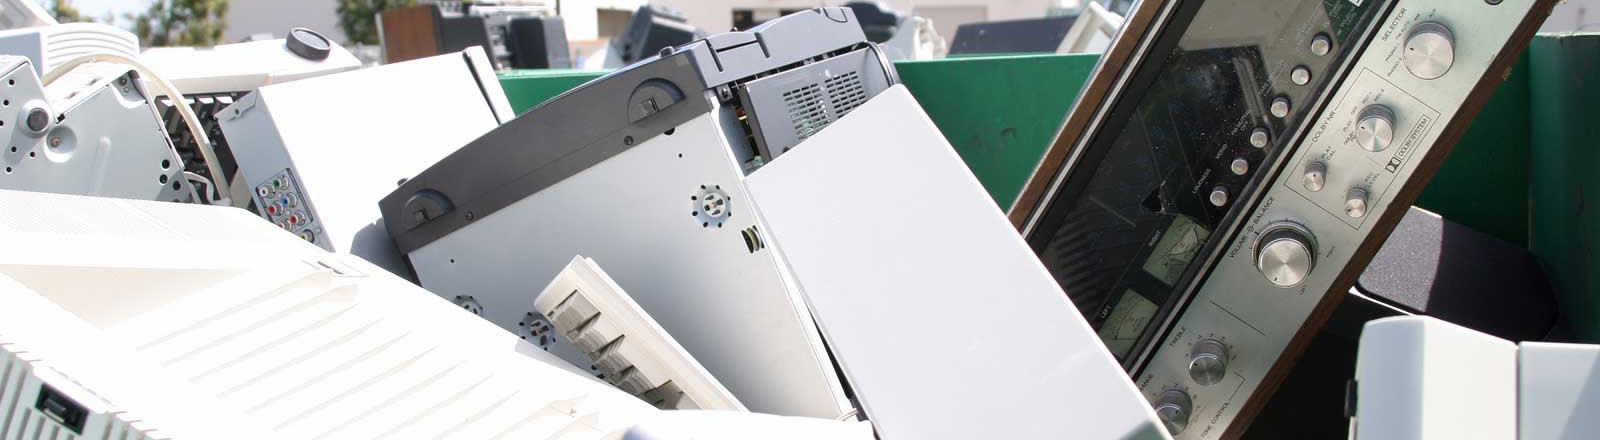 TV and computer recycling